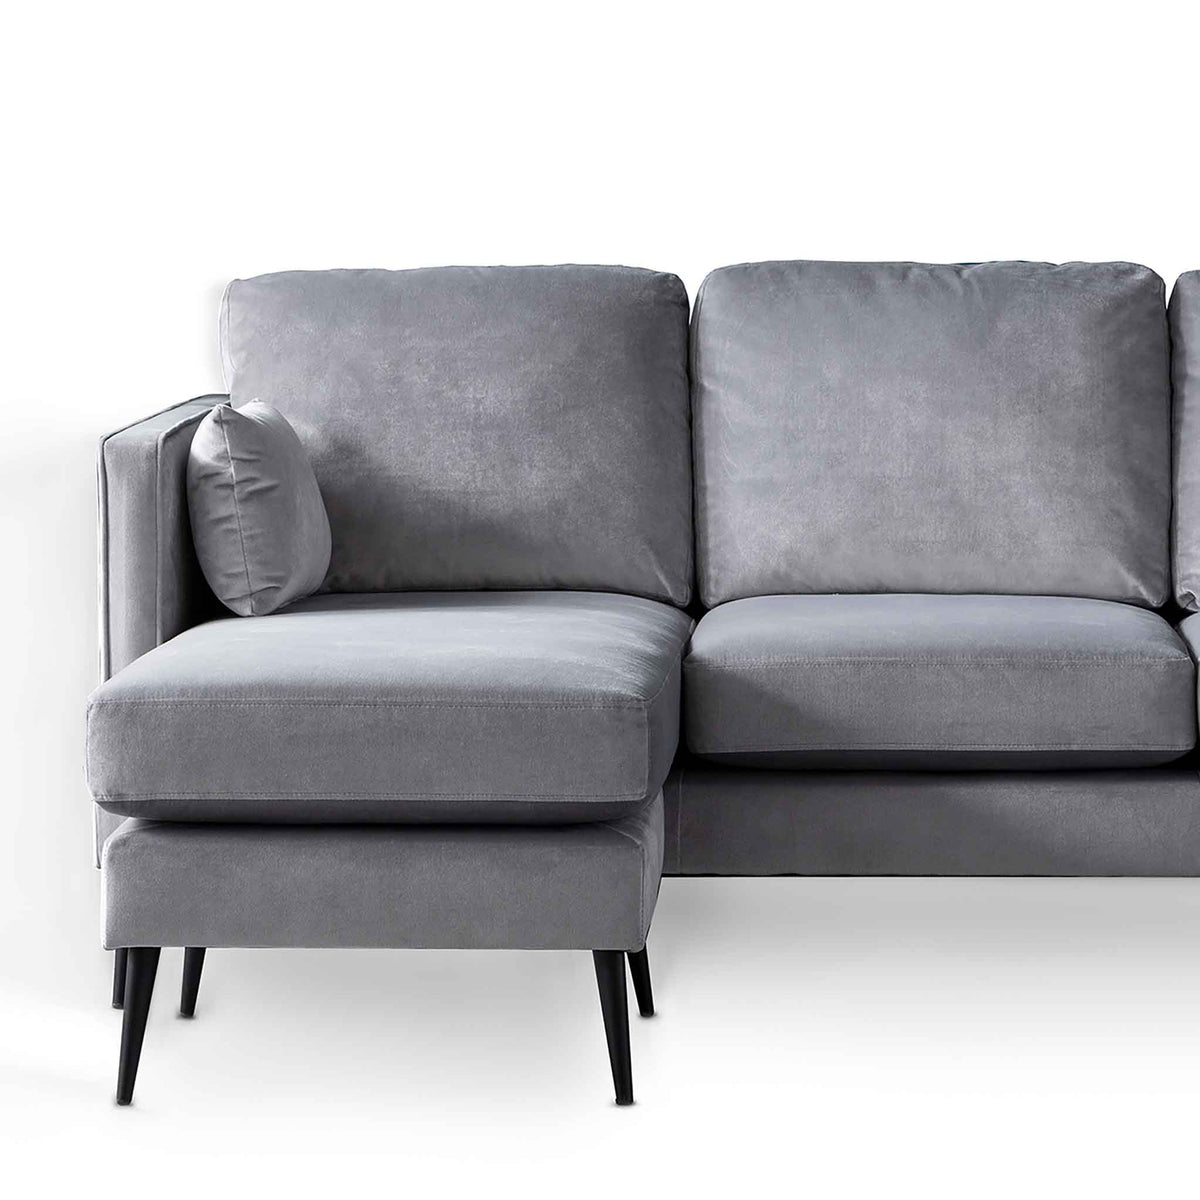 Anton Reversible Grey Corner Chaise Sofa - Close up of Chaise section